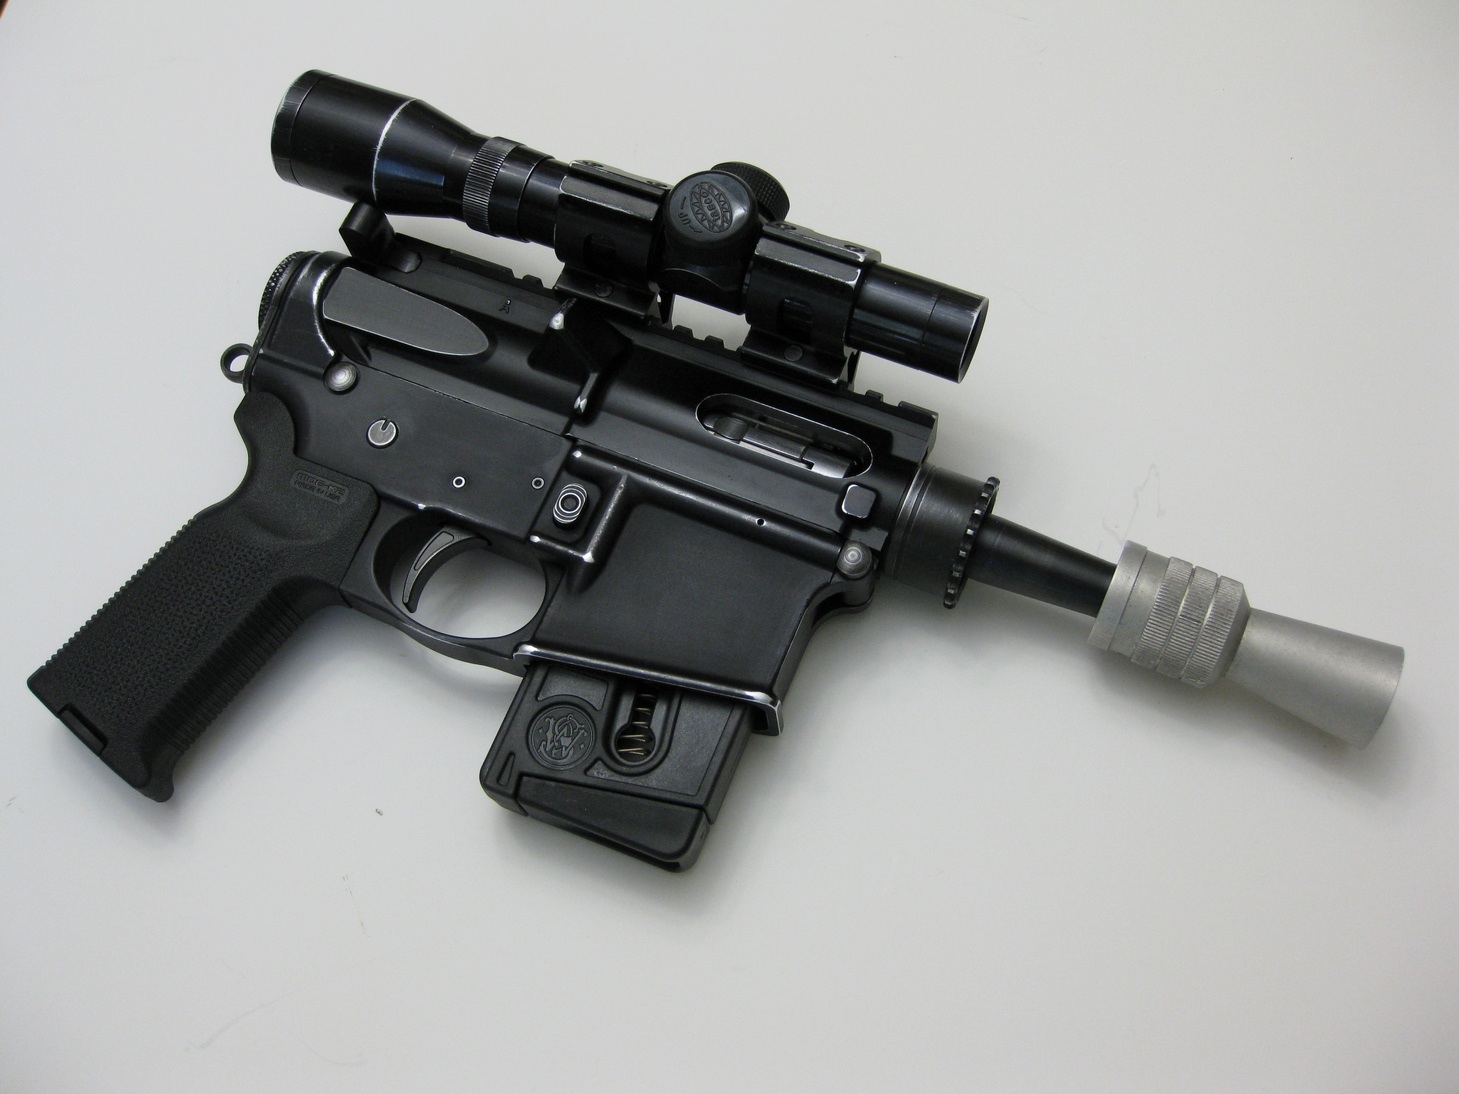 MY Blaster Collection update: REAL Mauser C96 Broomhandle